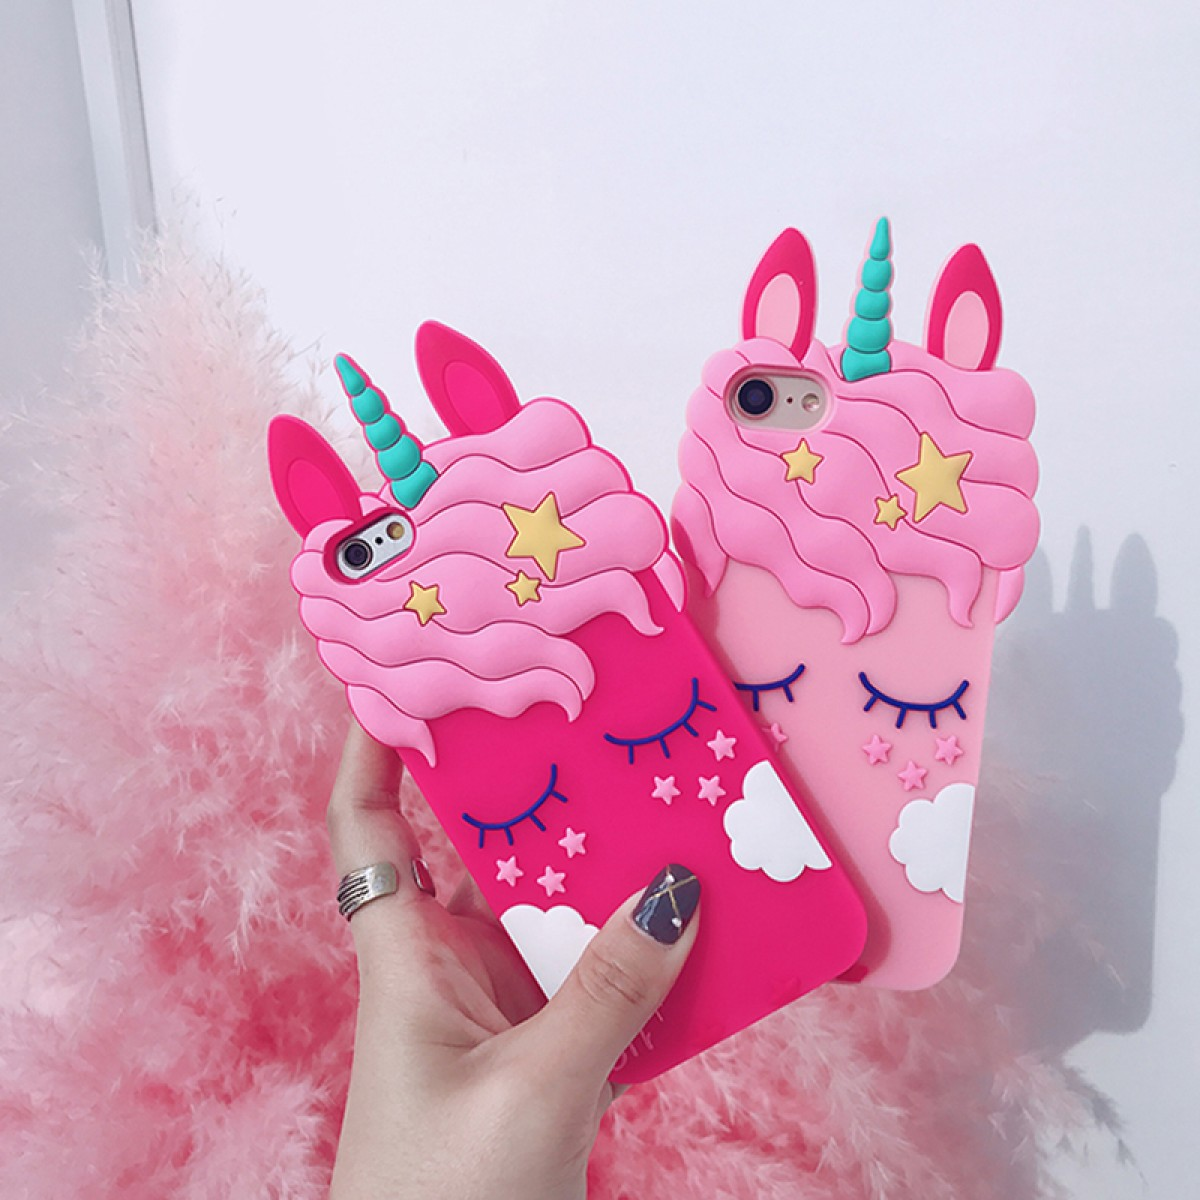 the latest 0adc1 e02ab 3D Colorful Unicorn Case Horse Cute Cartoon Silicone Soft Phone Case For  Iphone 6, Iphone 7, Iphone 8 Plus, Iphone X